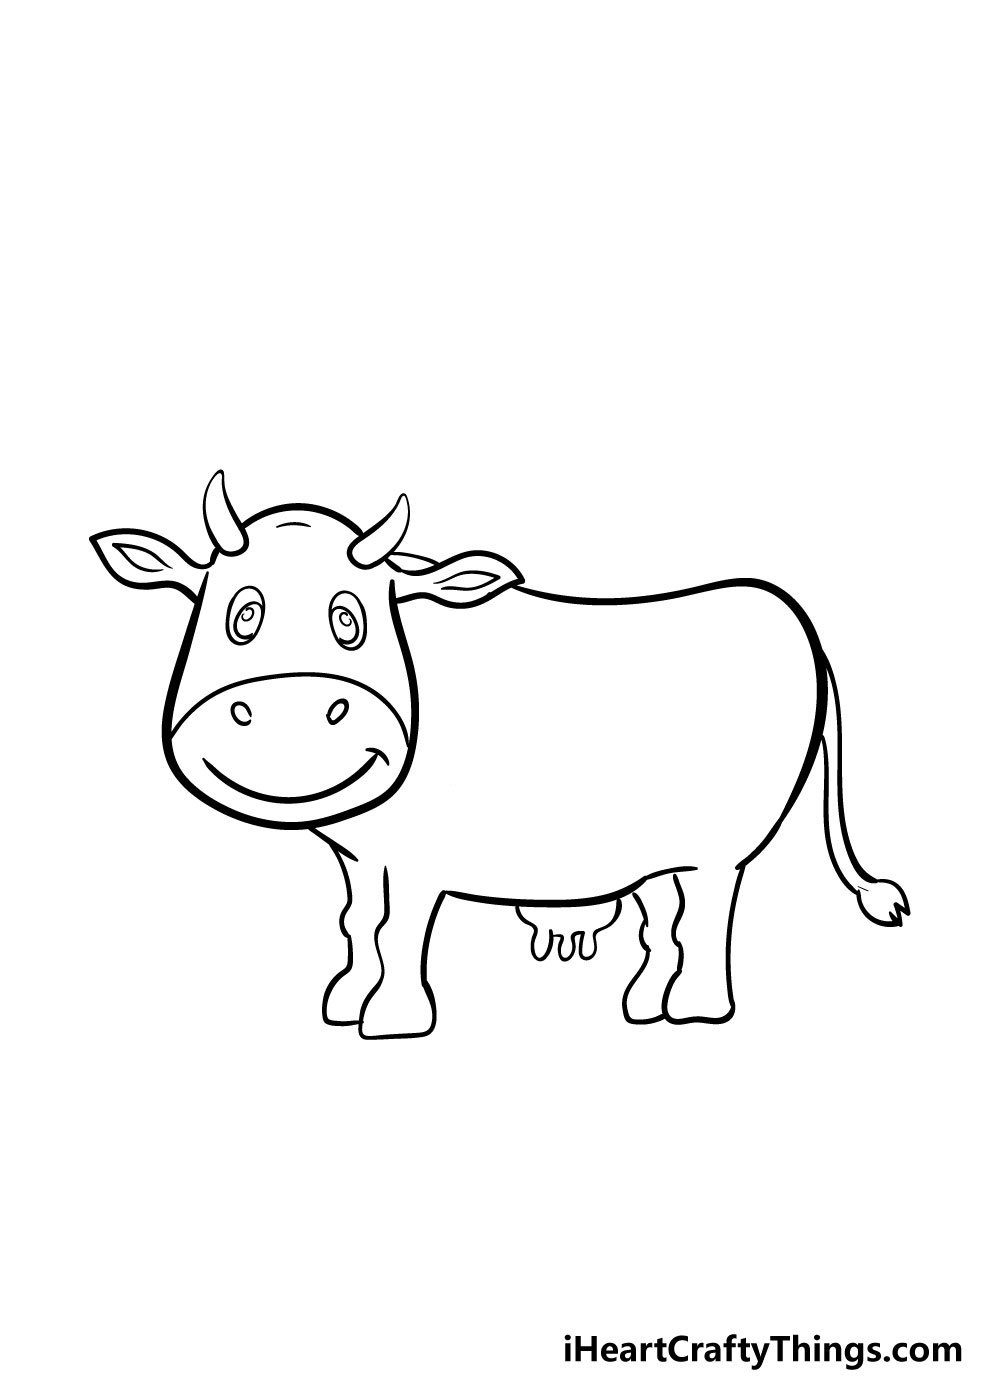 cow drawing step 7